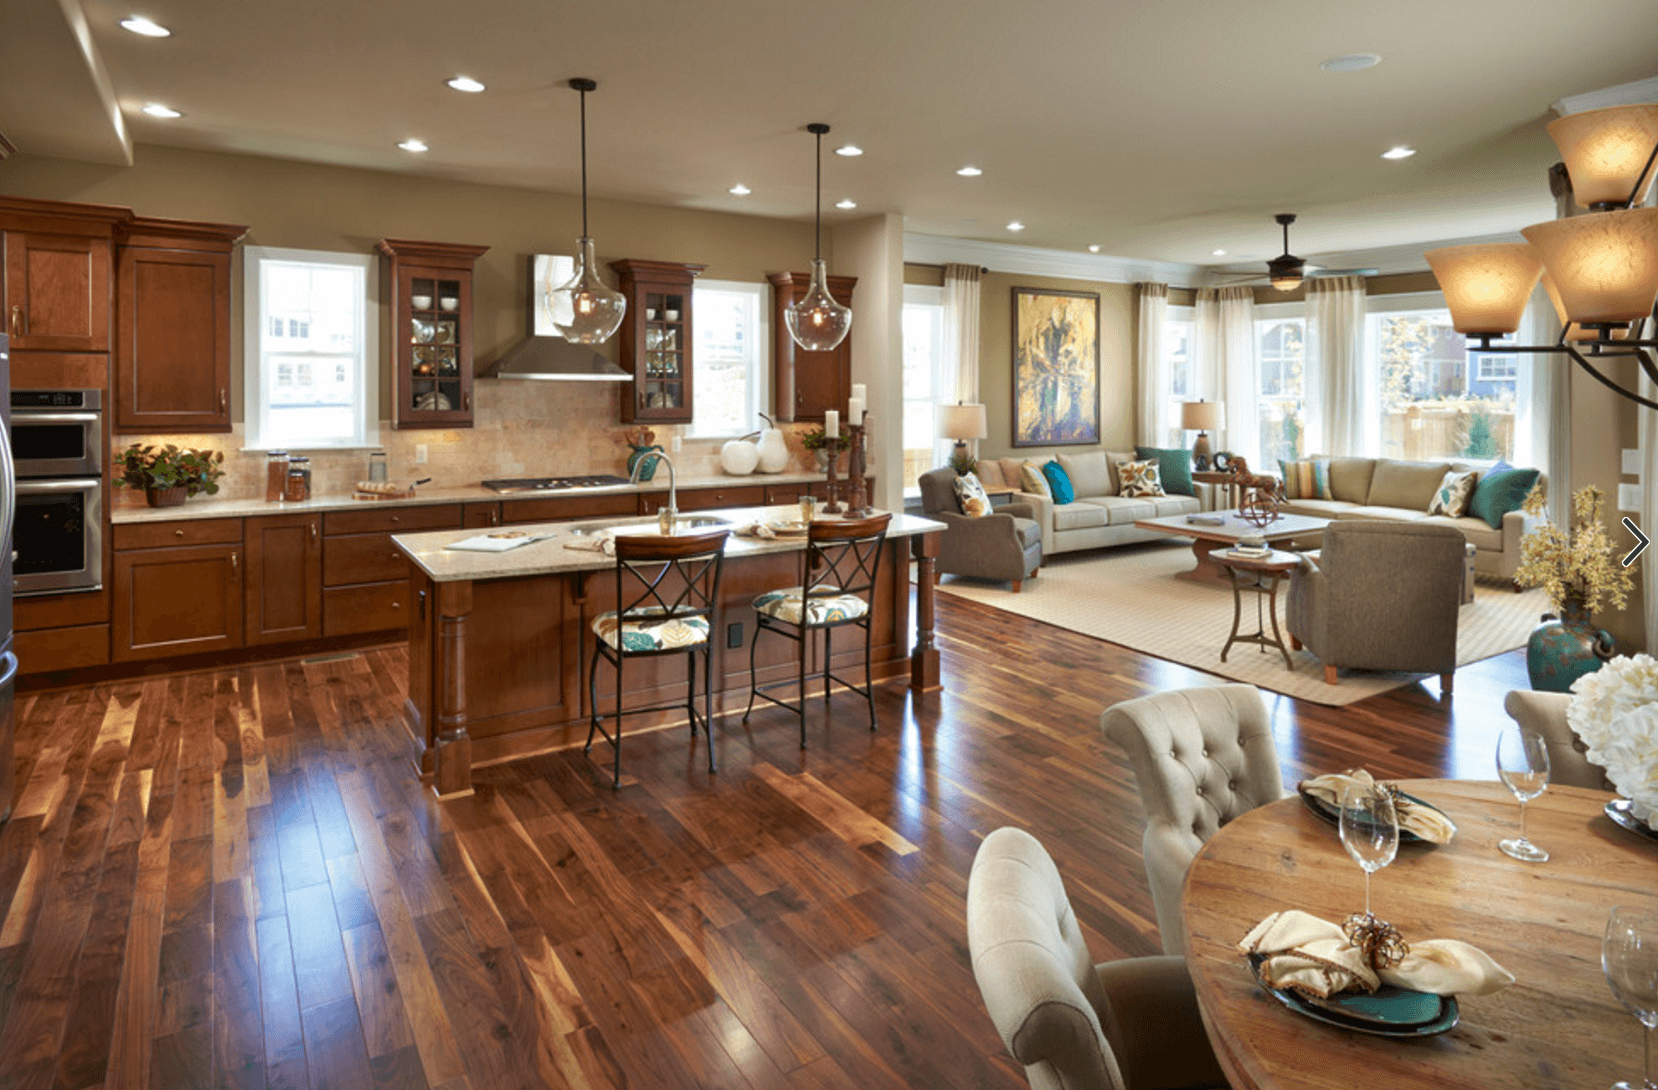 Gleaming Wood Flooring Ties The Space Together  6 Great Reasons Amusing Modern Living Room And Kitchen Design Design Ideas